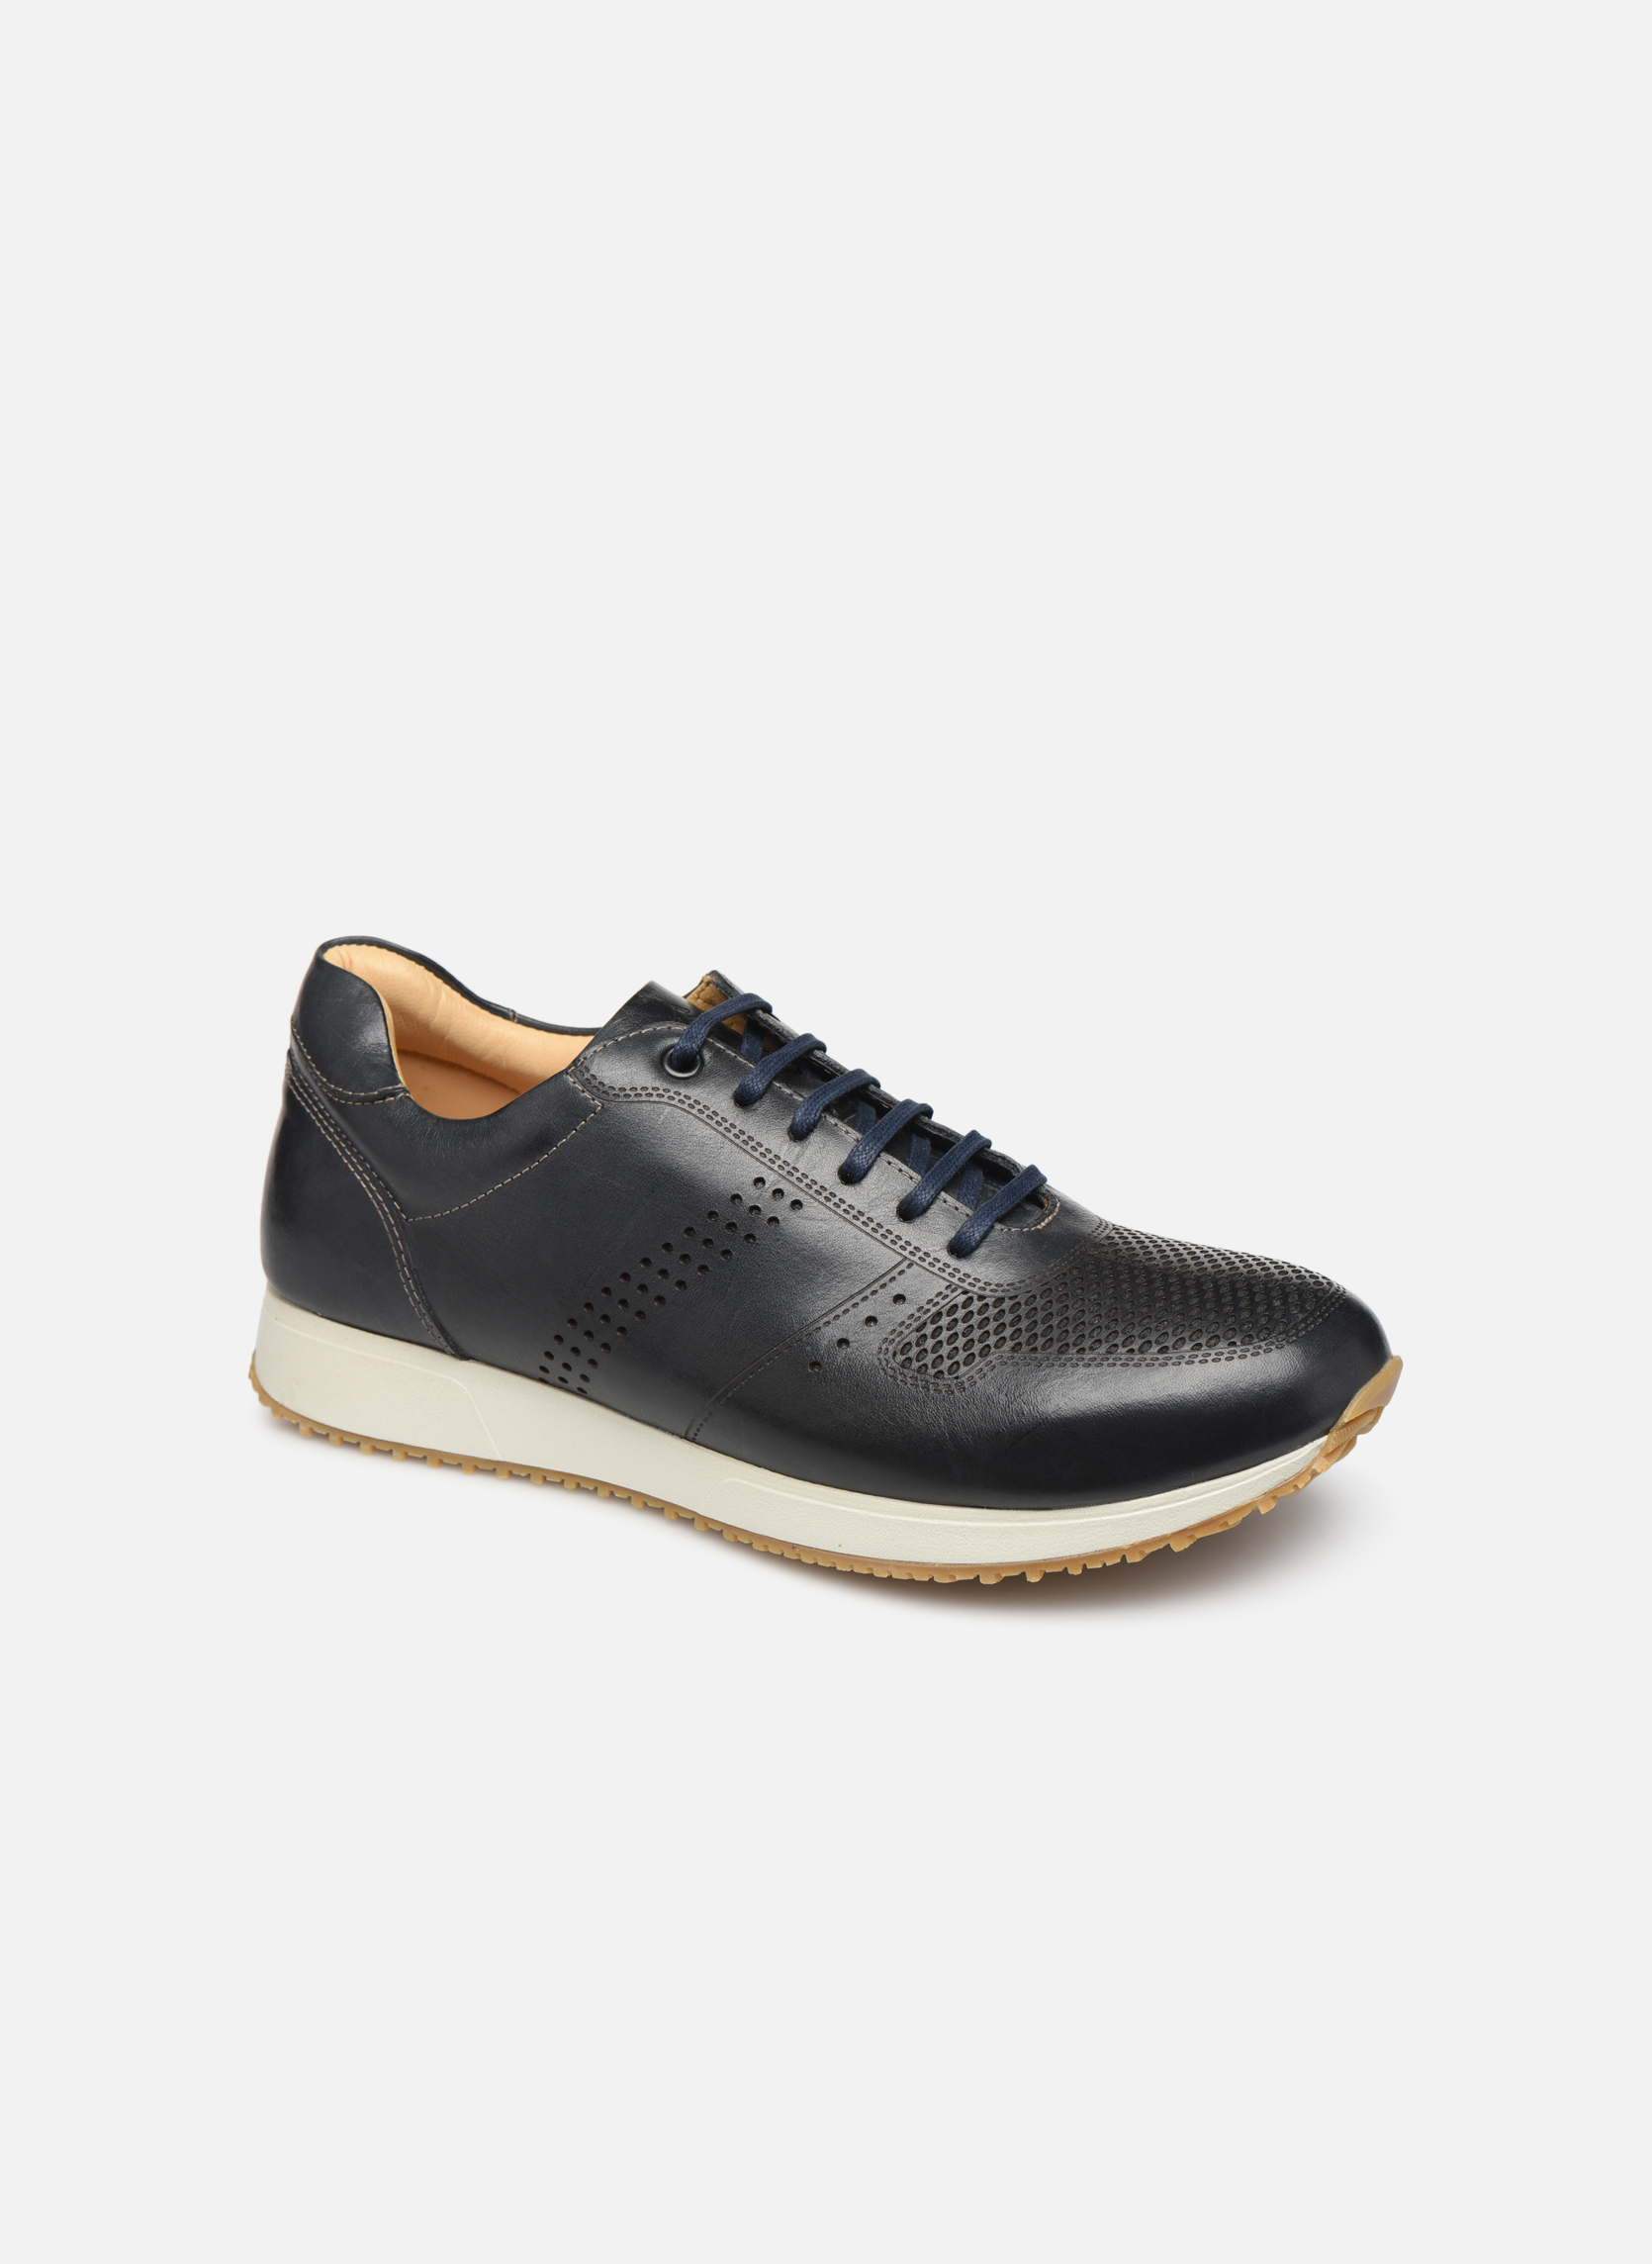 Sneakers Anatomic & Co Blauw